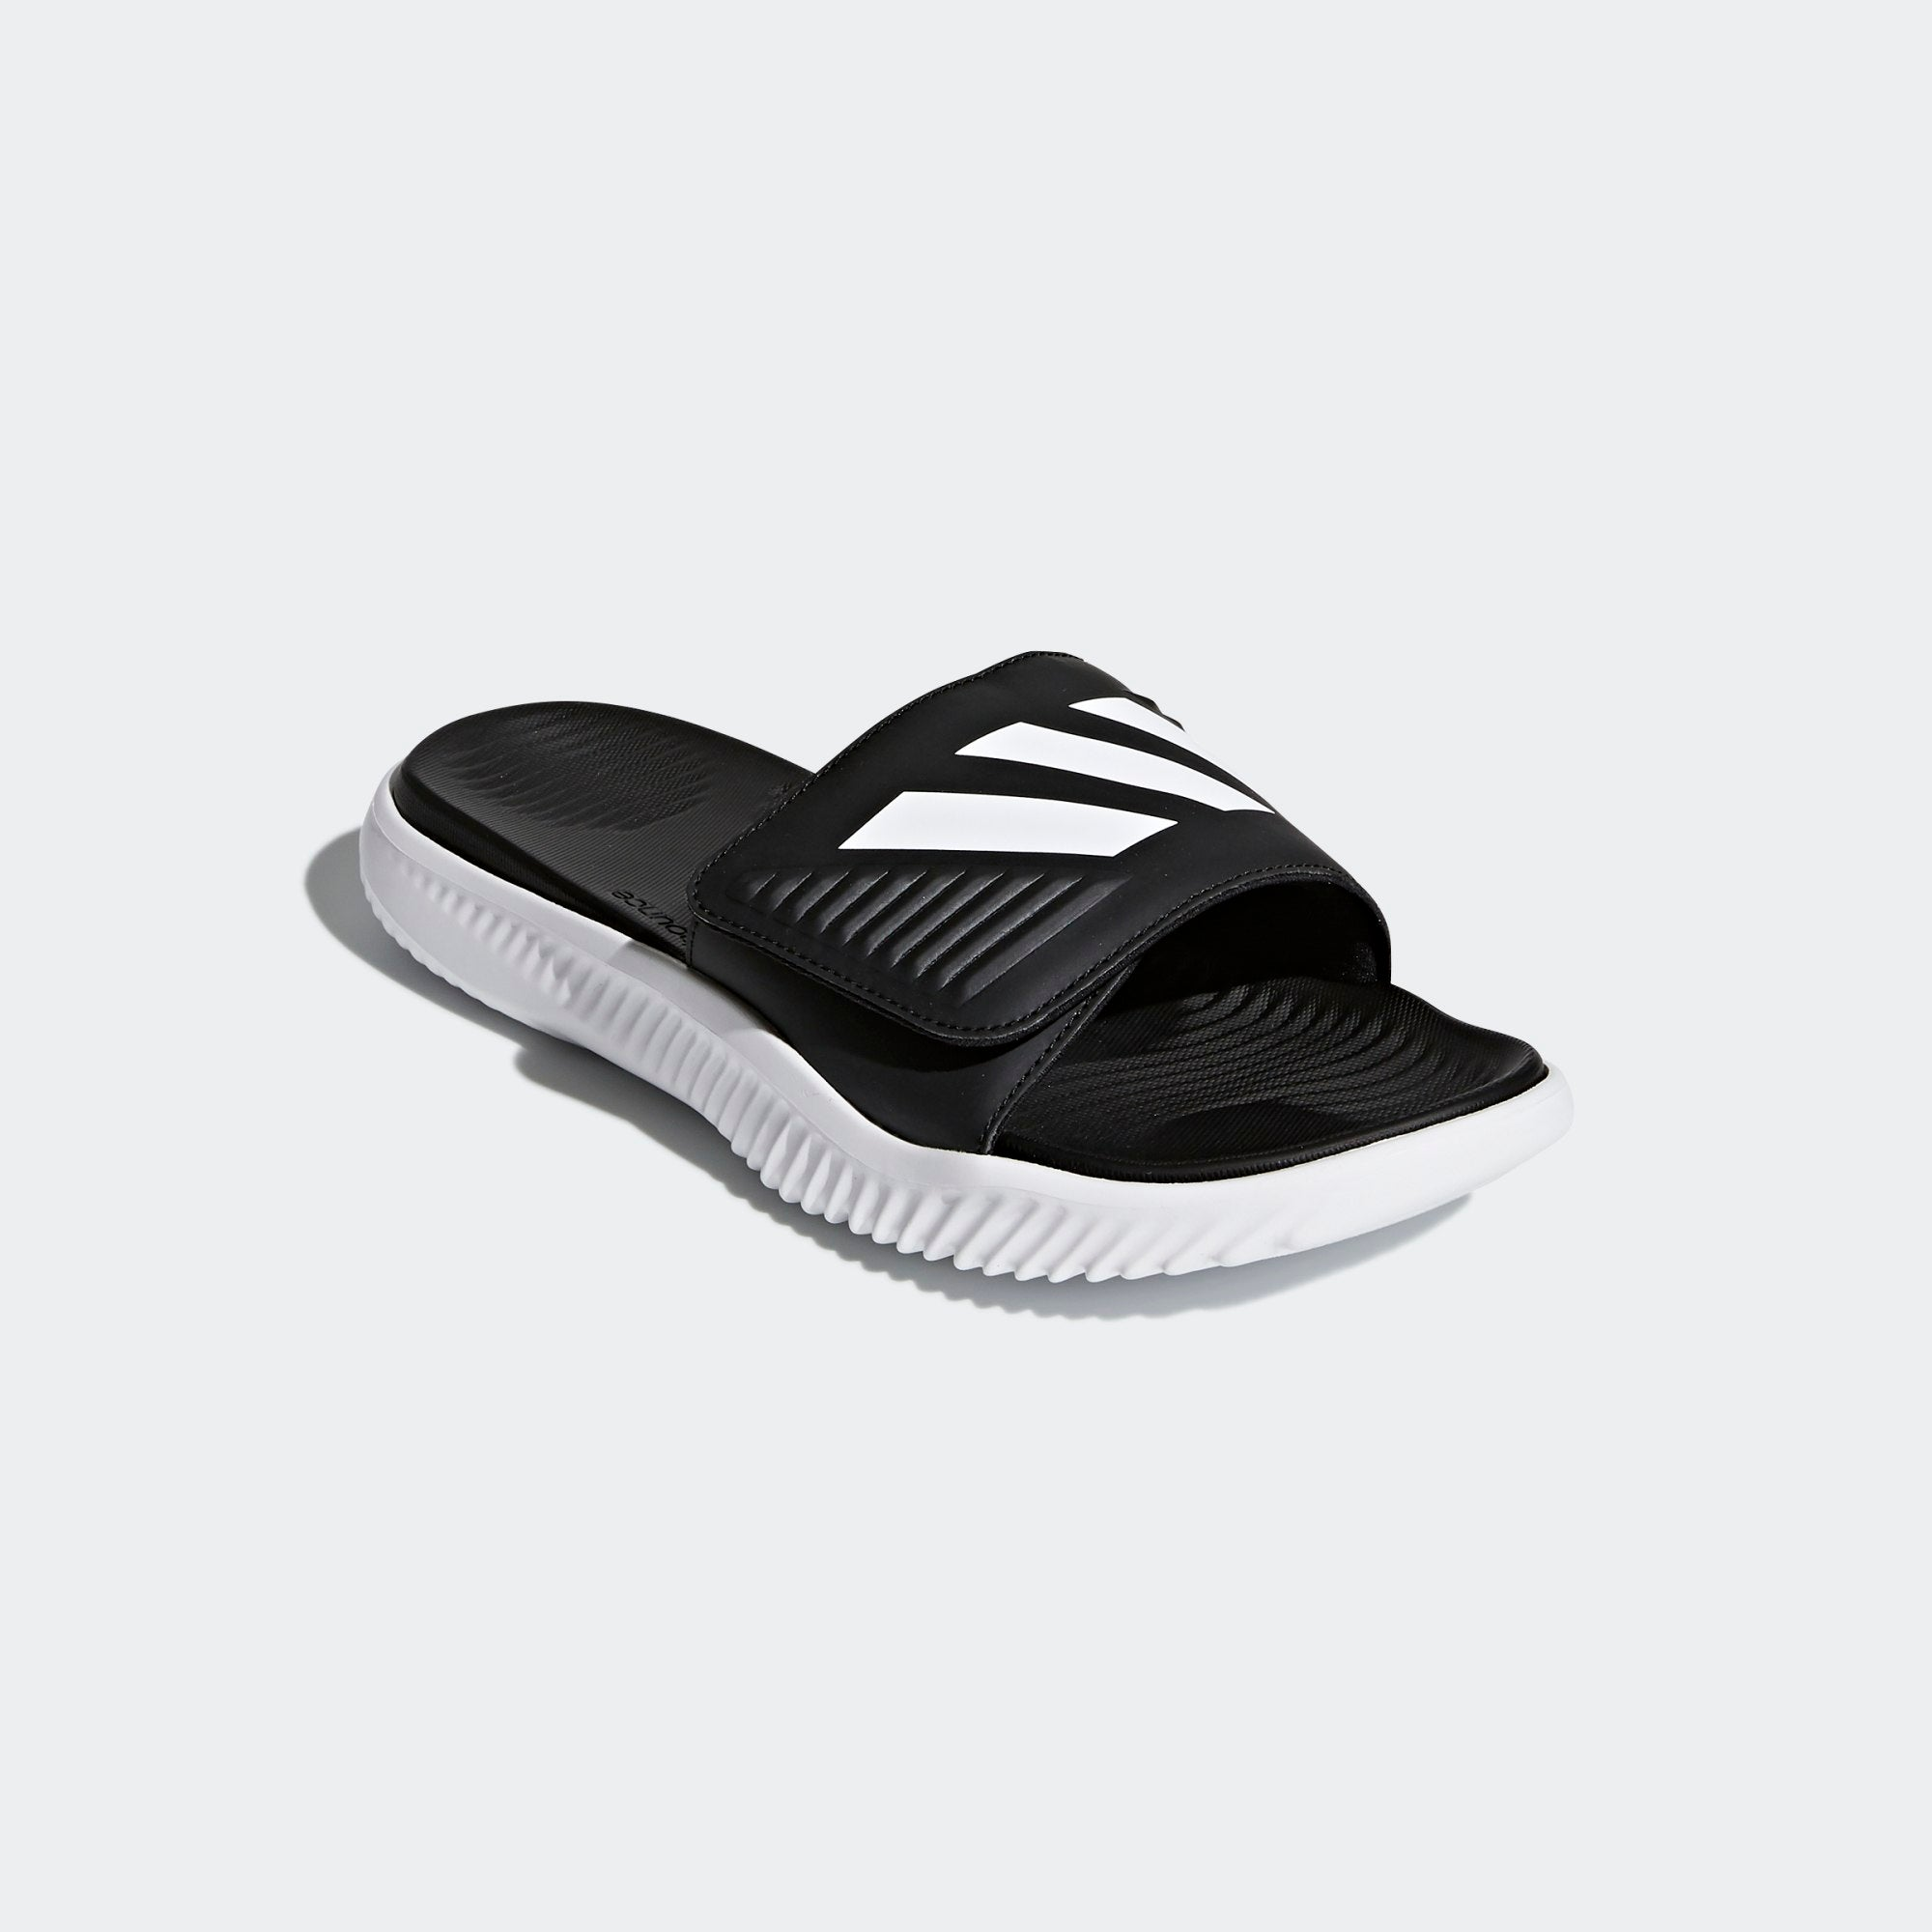 Adidas Men's Bounce Slides